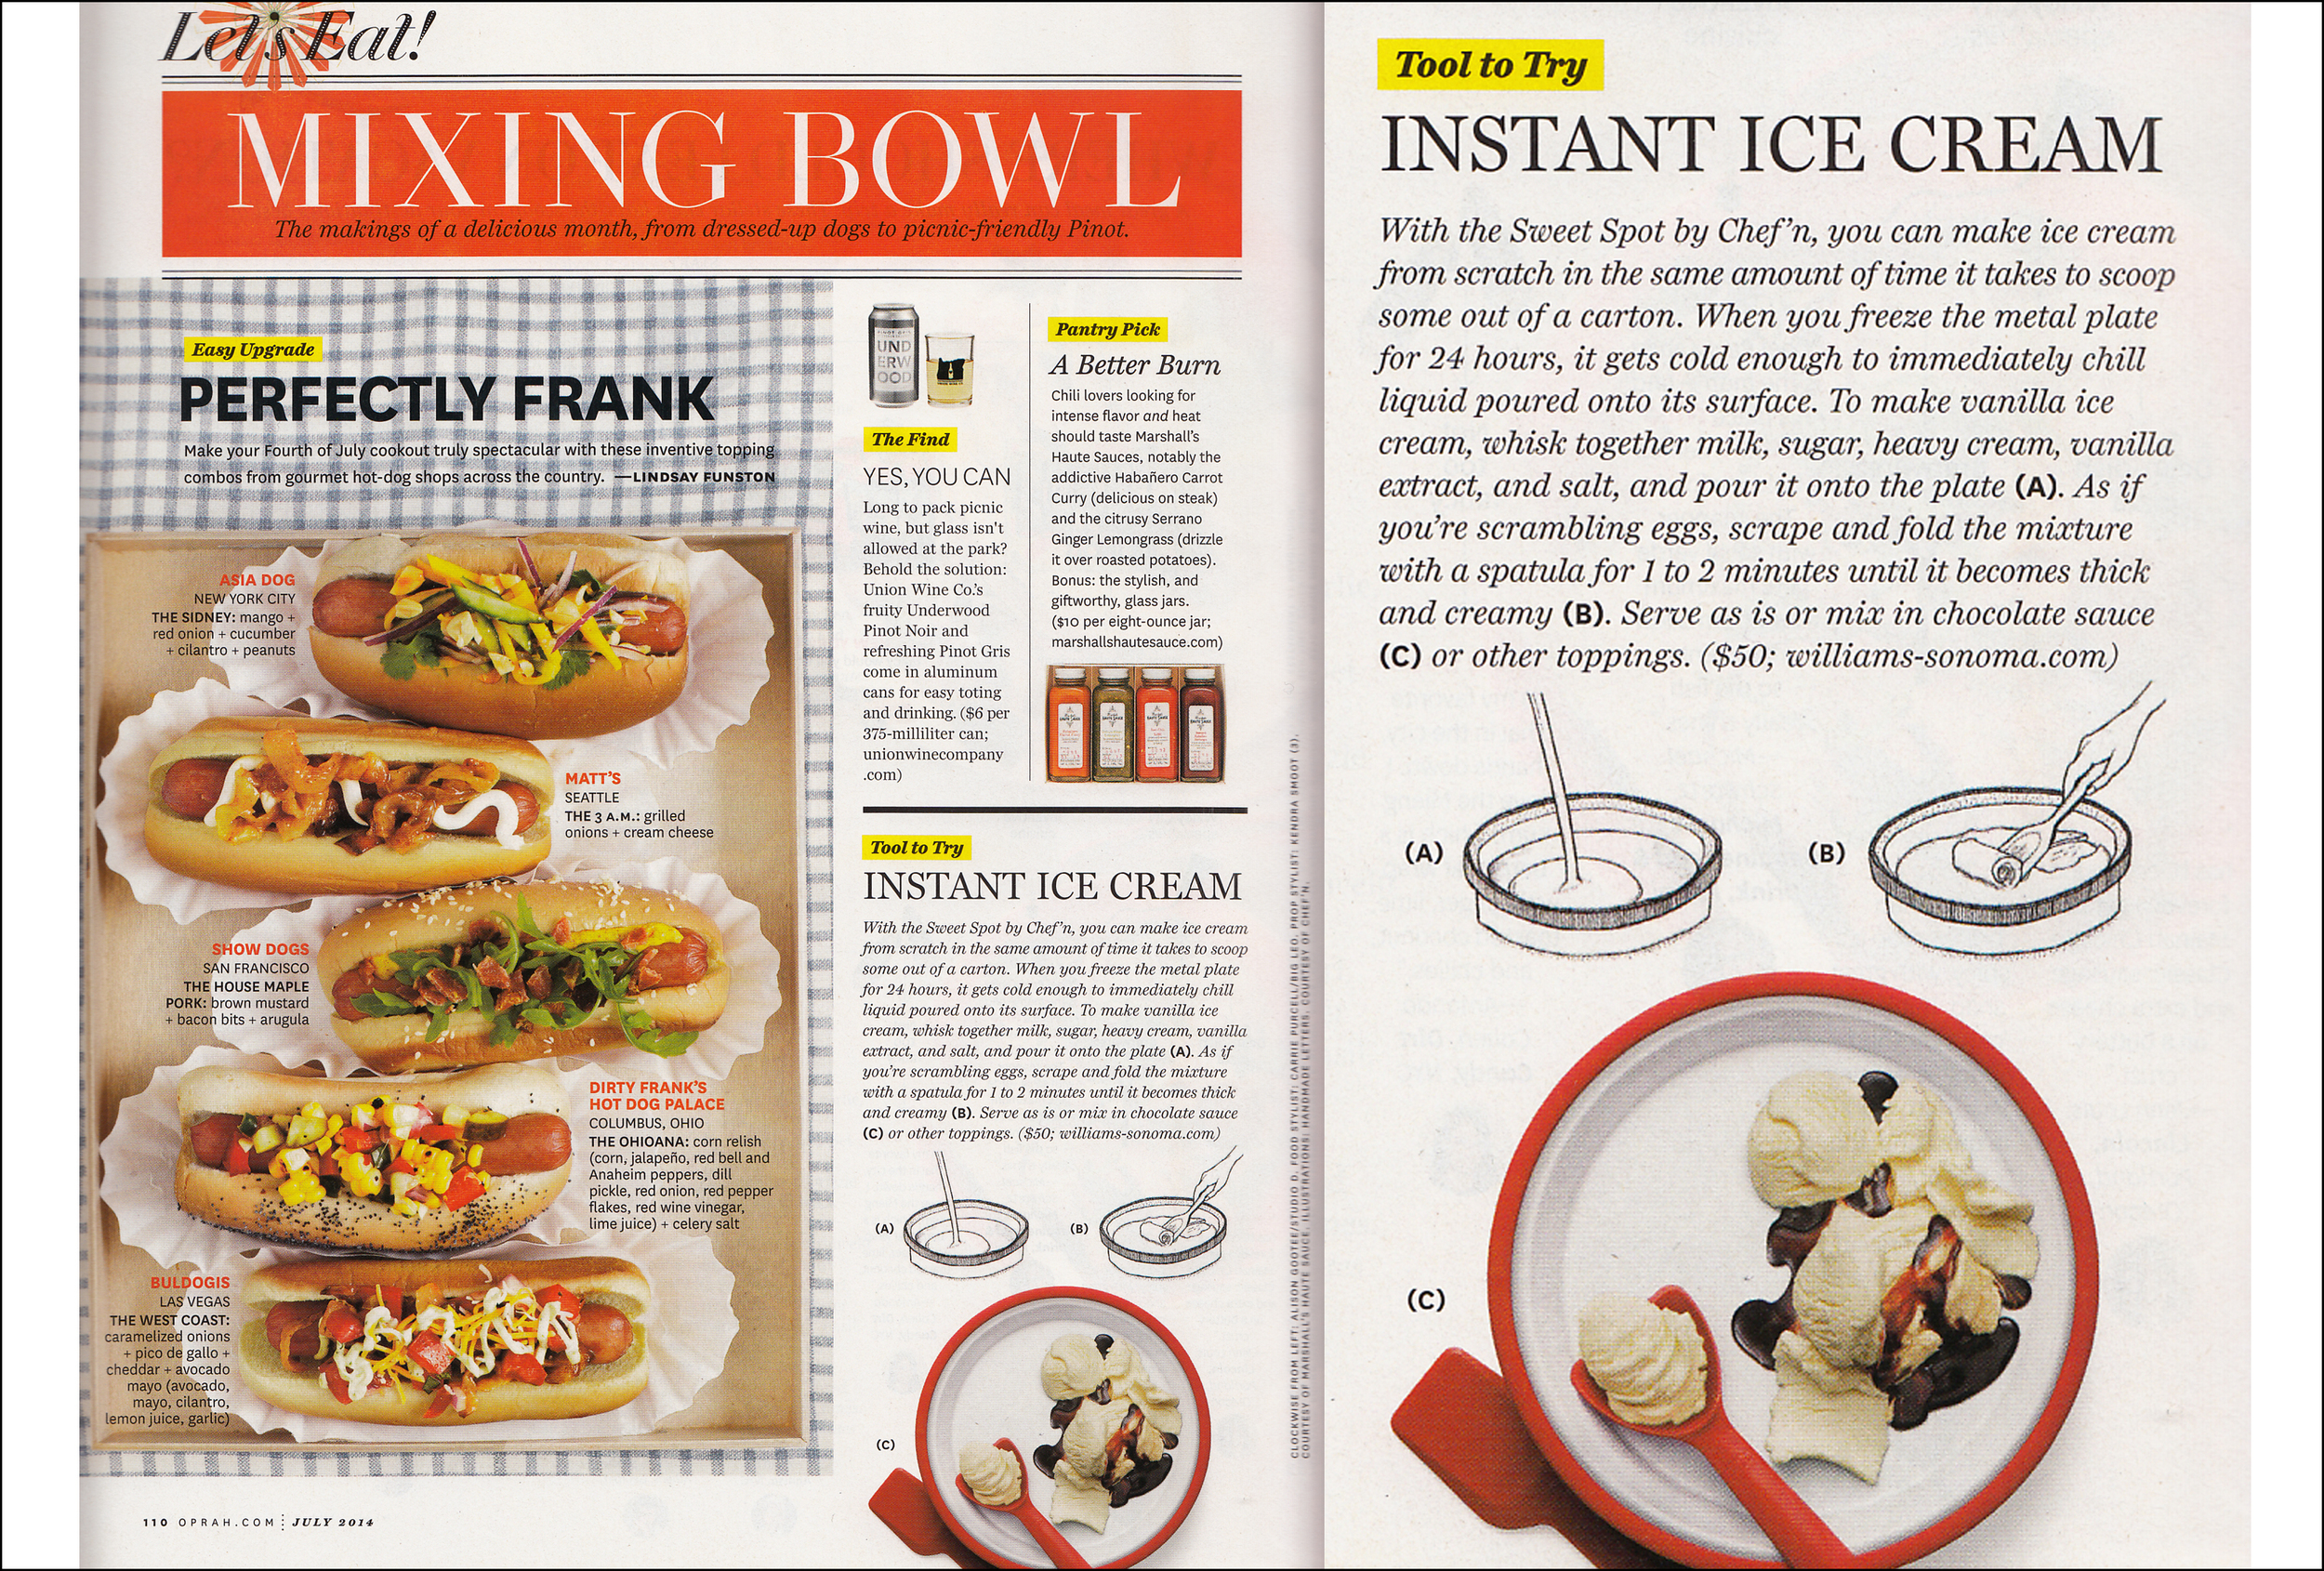 O, The Oprah Magazine, July 2014, Instant ice cream spot feature